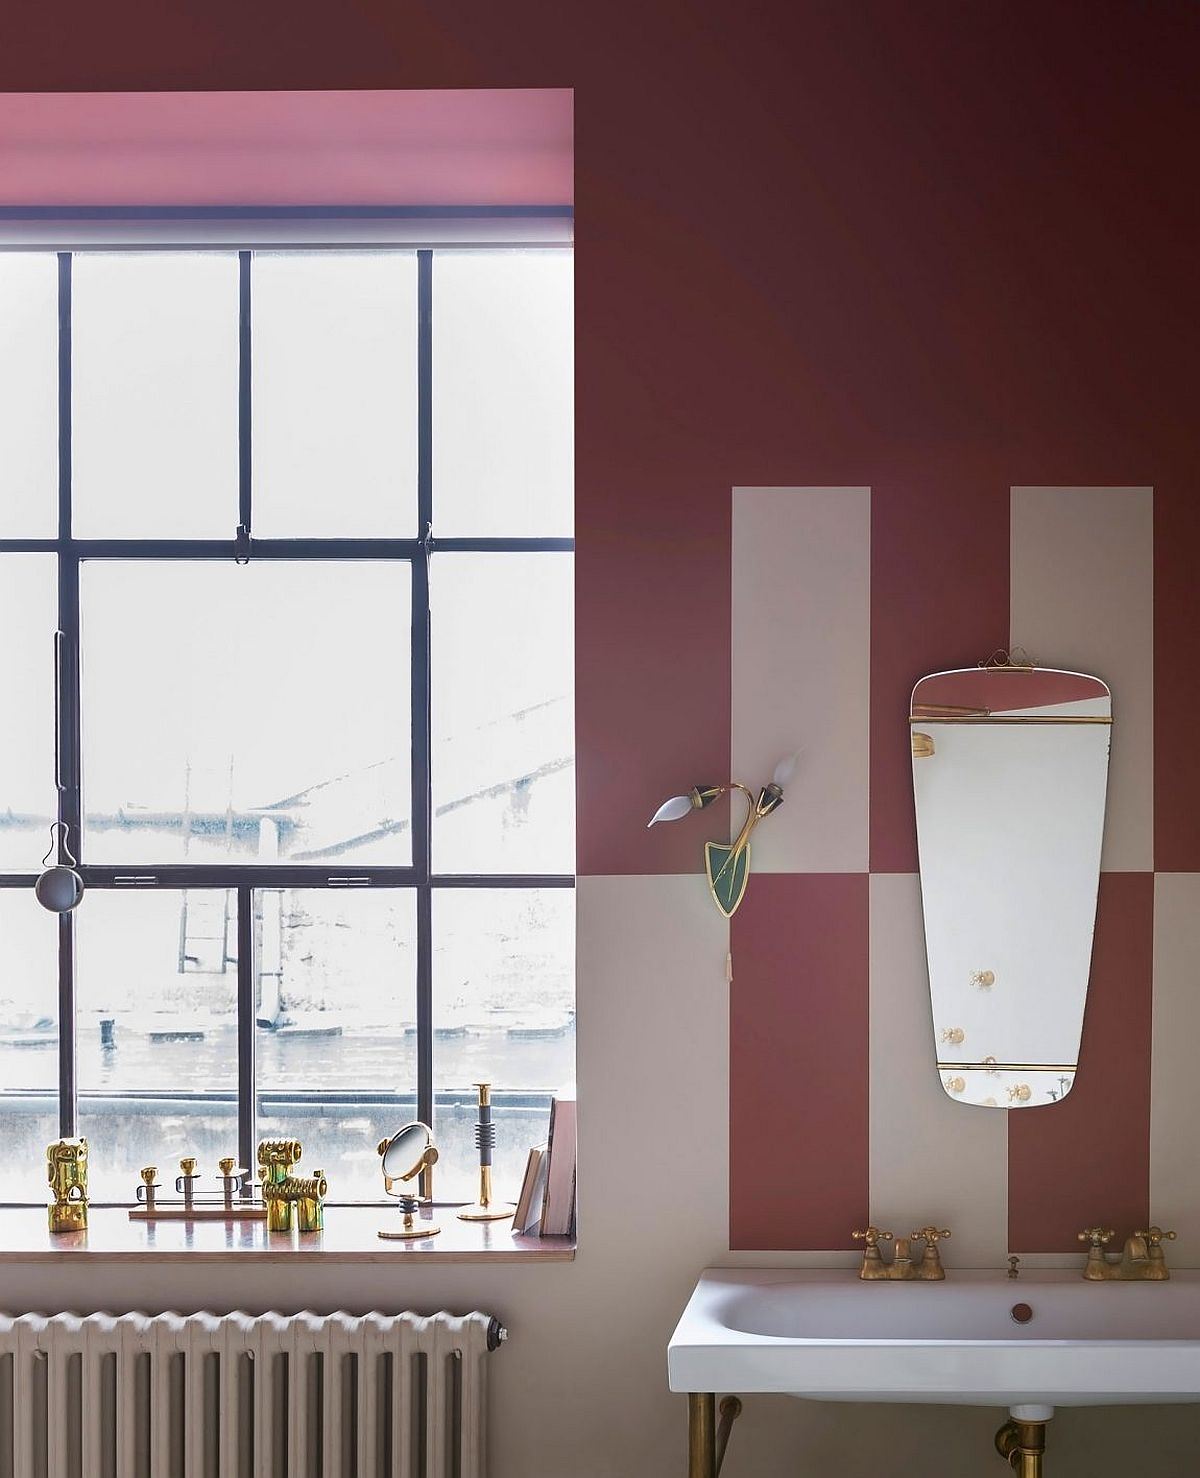 Bathroom in pink and white with a dash of gold